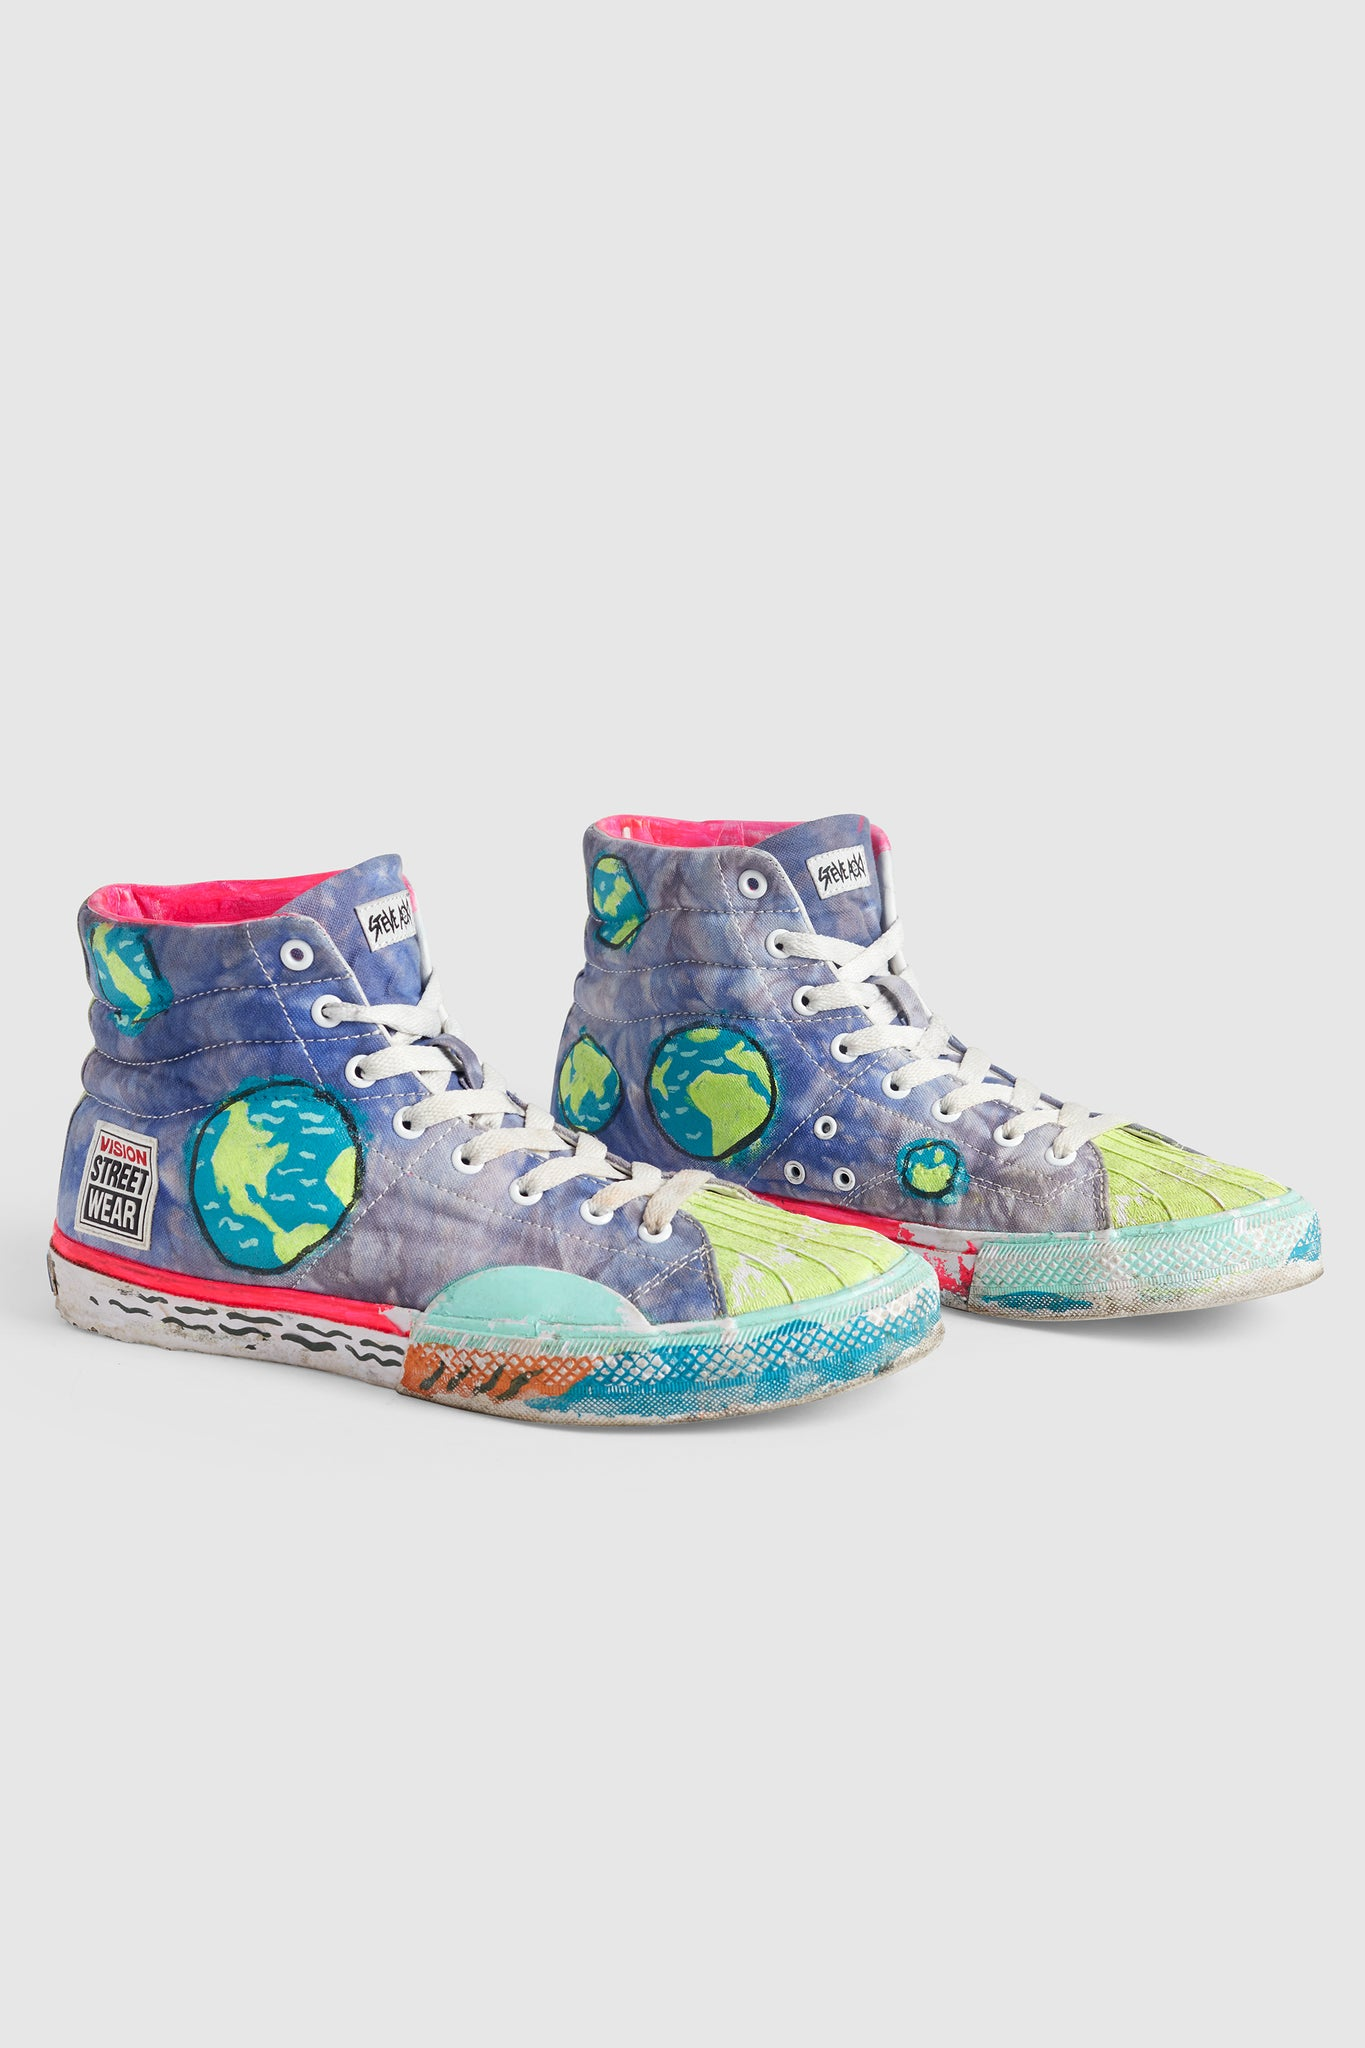 VSW PAINTED EARTH SNEAKERS #69